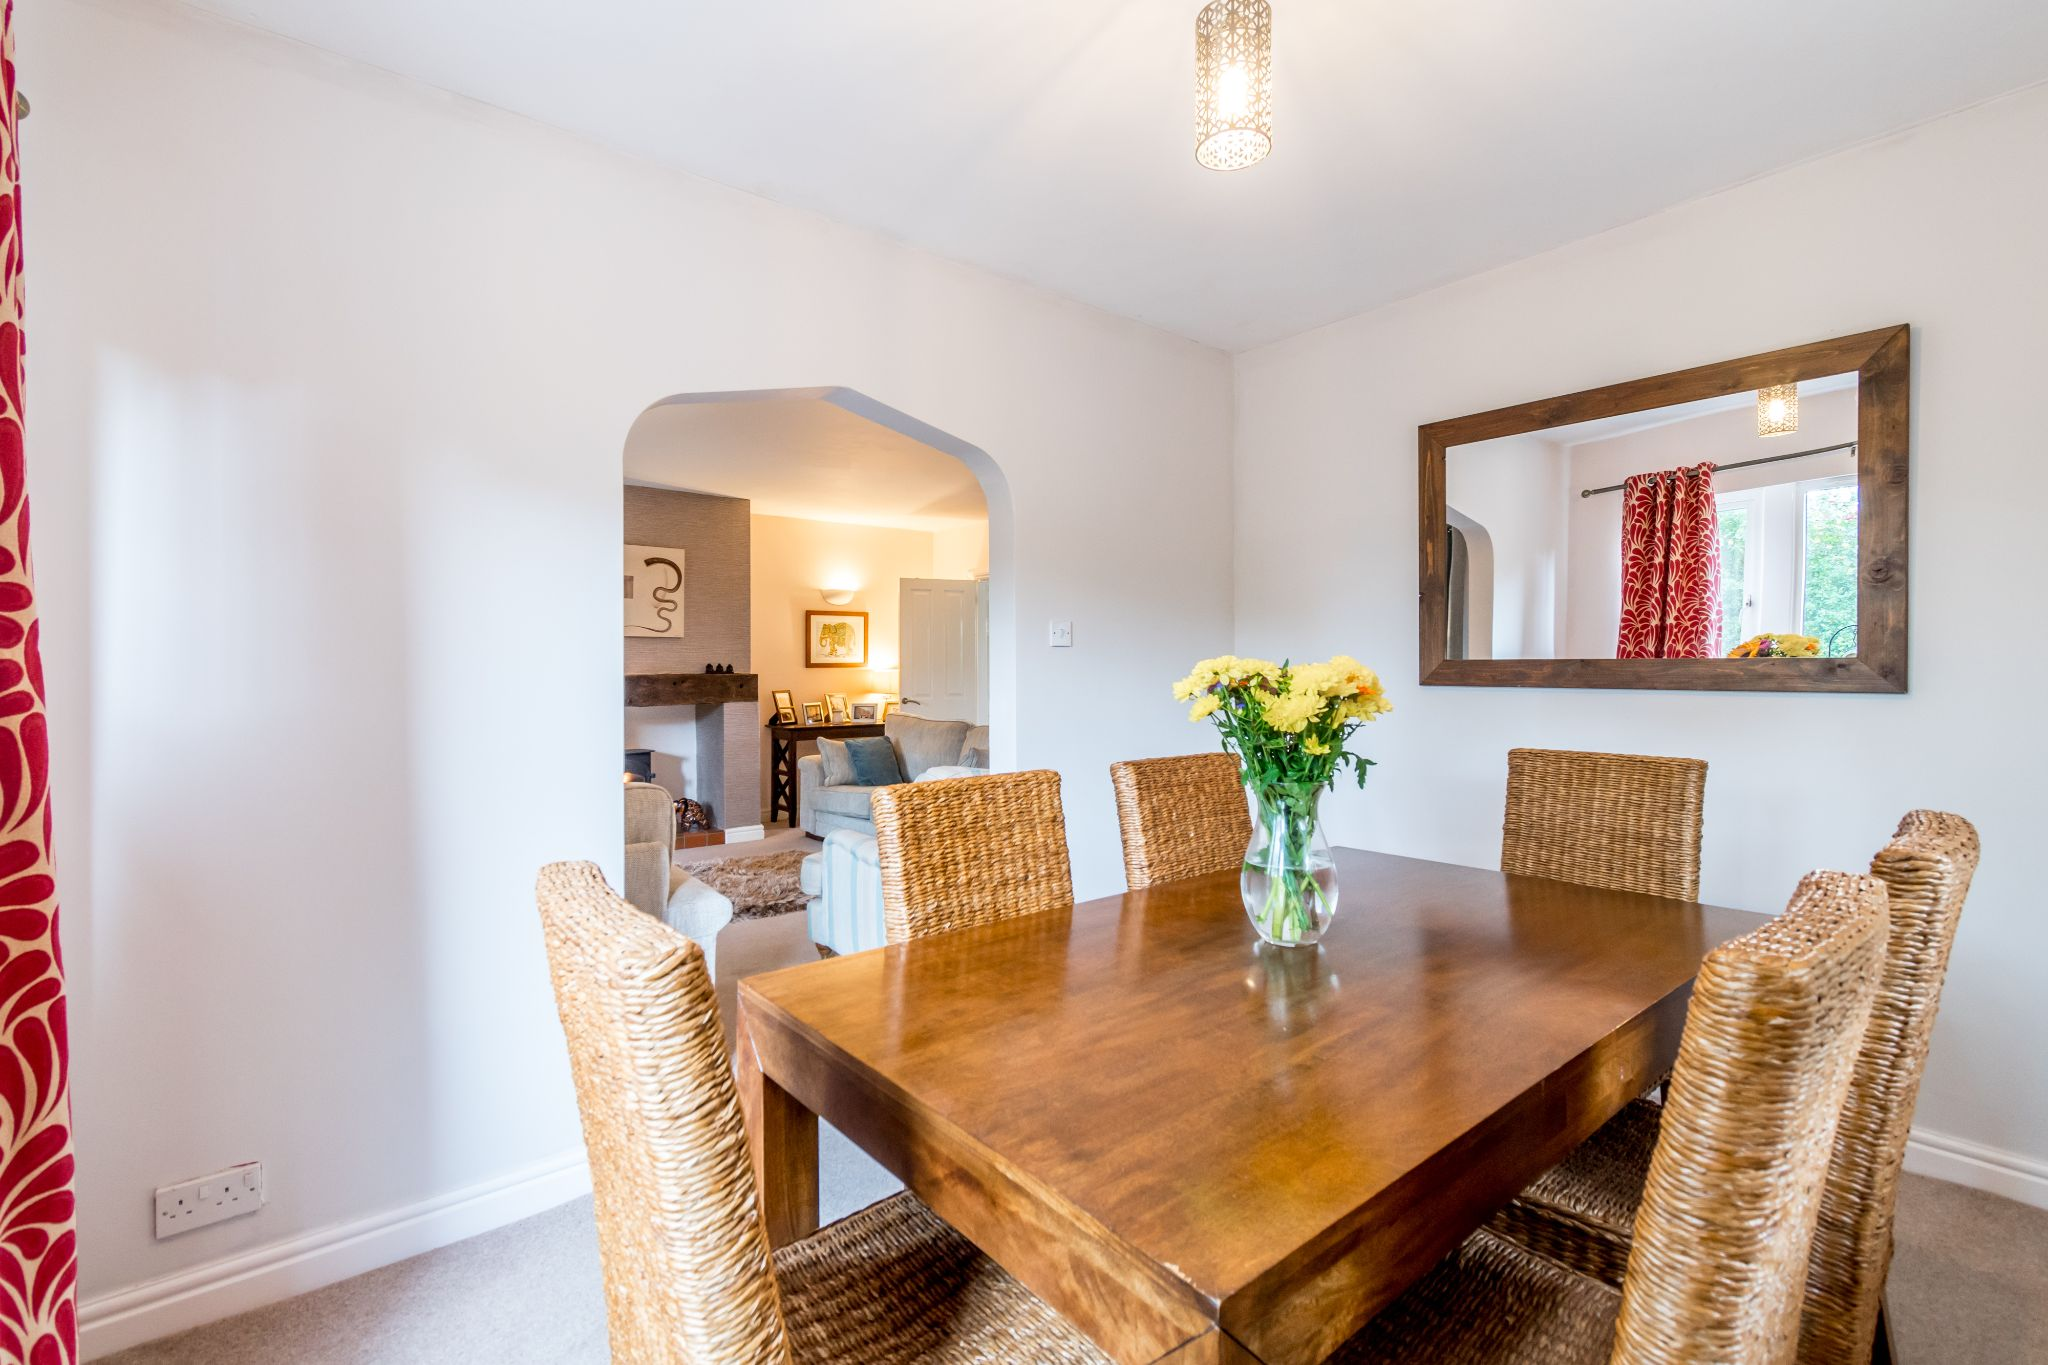 5 bedroom detached house For Sale in Brighouse - Dining room